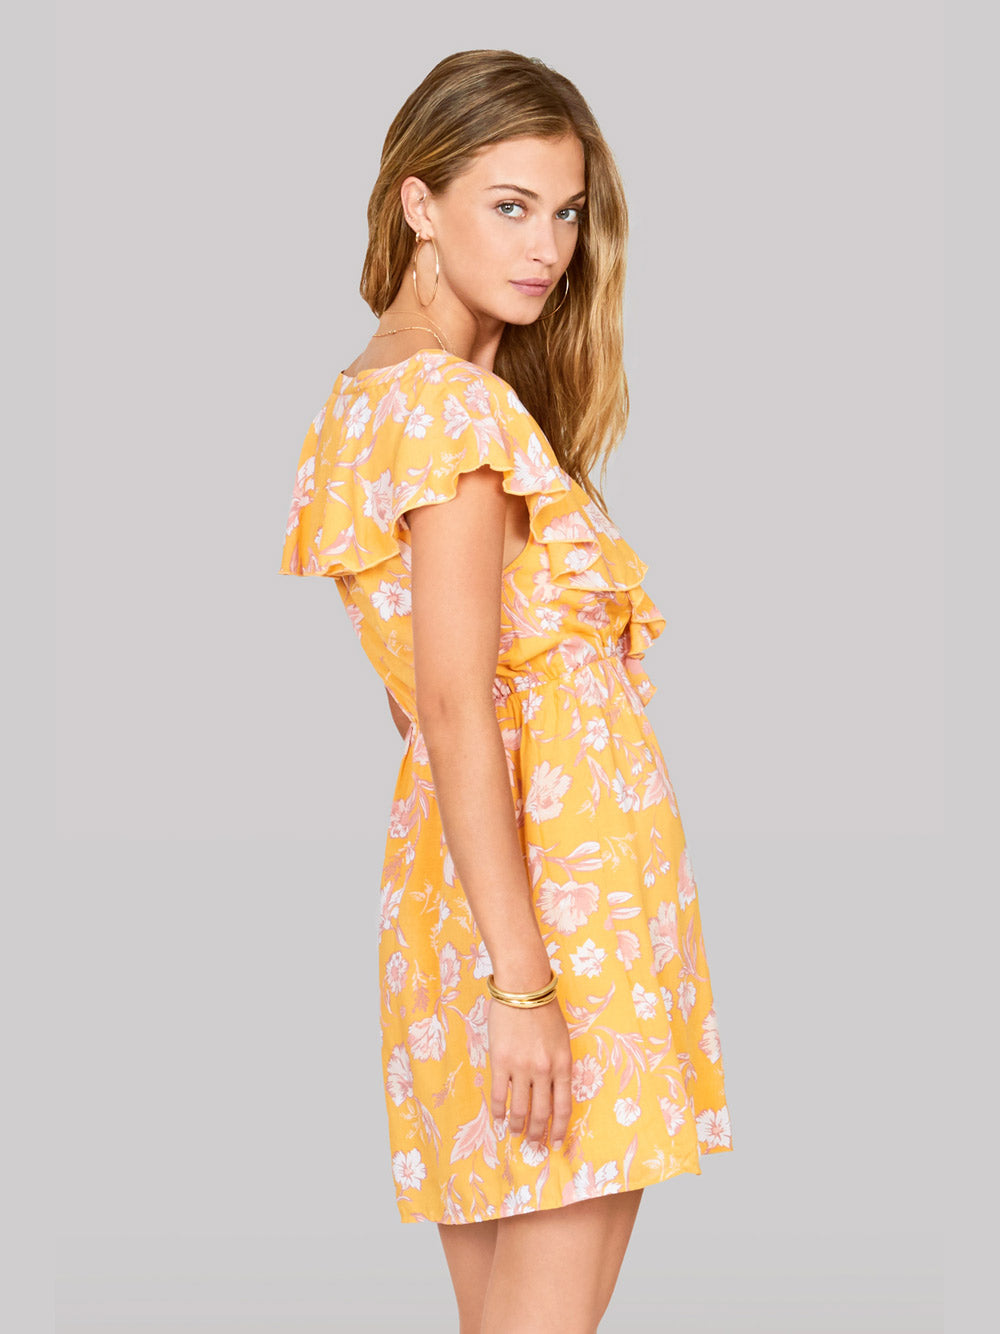 AMUSE SOCIETY Play Nice Dress - Honey